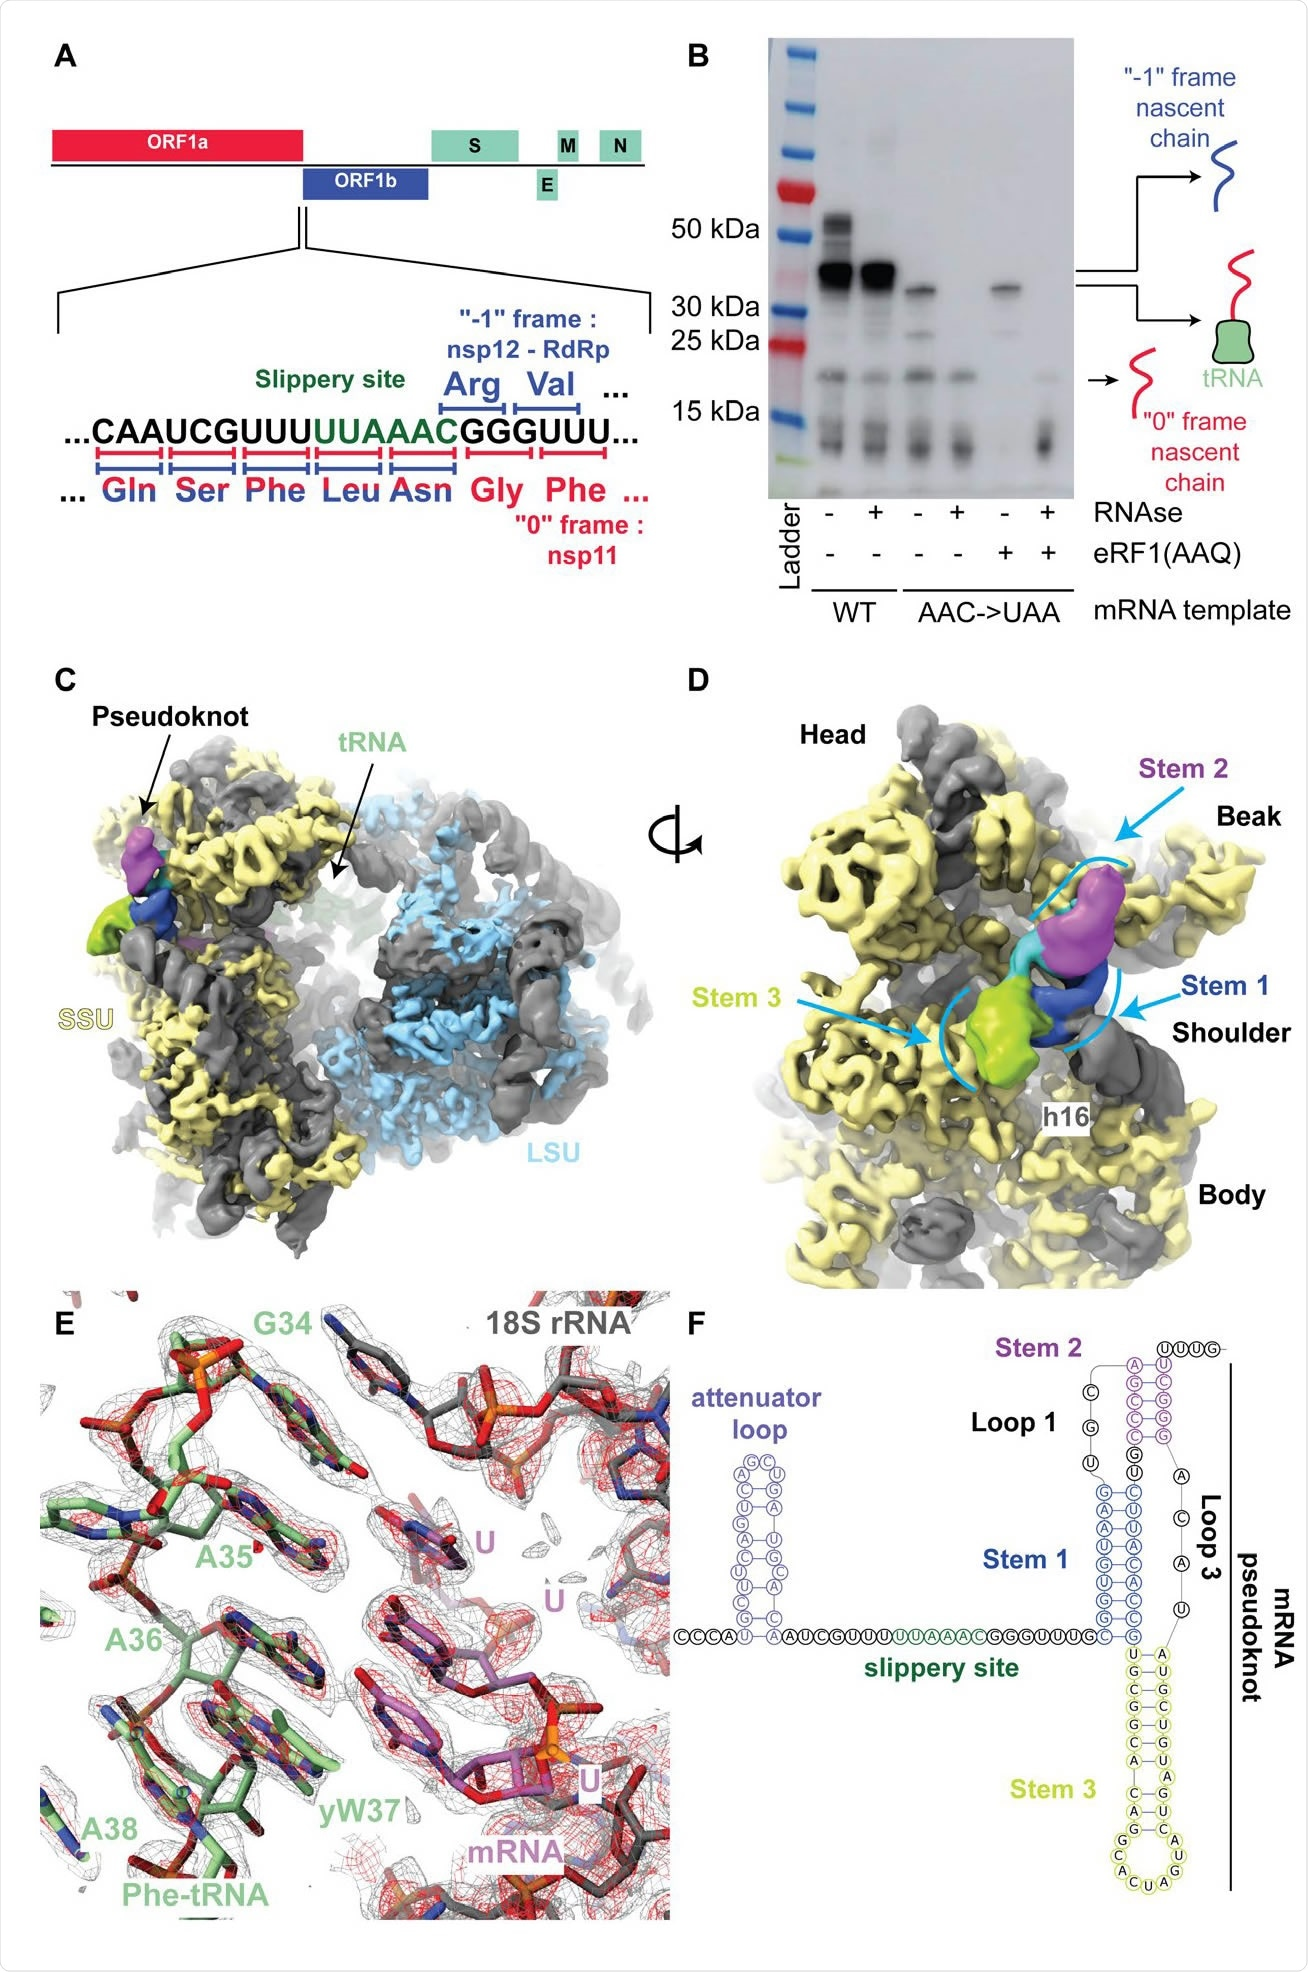 The SARS-Cov-2 pseudoknot interacts with the ribosome and pauses translation upstream of the slippery site. (A) Schematic of the SARS-CoV-2 main ORF. In the close up view of the frameshift event, codons and corresponding amino acids are shown. During -1 frameshifting, the 'slippery site' codons UUA (Leu) and AAC (Asn) are the last codons decoded in the 0 frame. Upon -1 frameshifting of the AAC codon to AAA, translation resumes at the CGG (Arg) triplet, where elongation proceeds uninterrupted to produce full-length Nsp12. (B) In vitro translation reaction depicting pausing at the frameshift site. Efficient frameshifting is observed for the WT template.